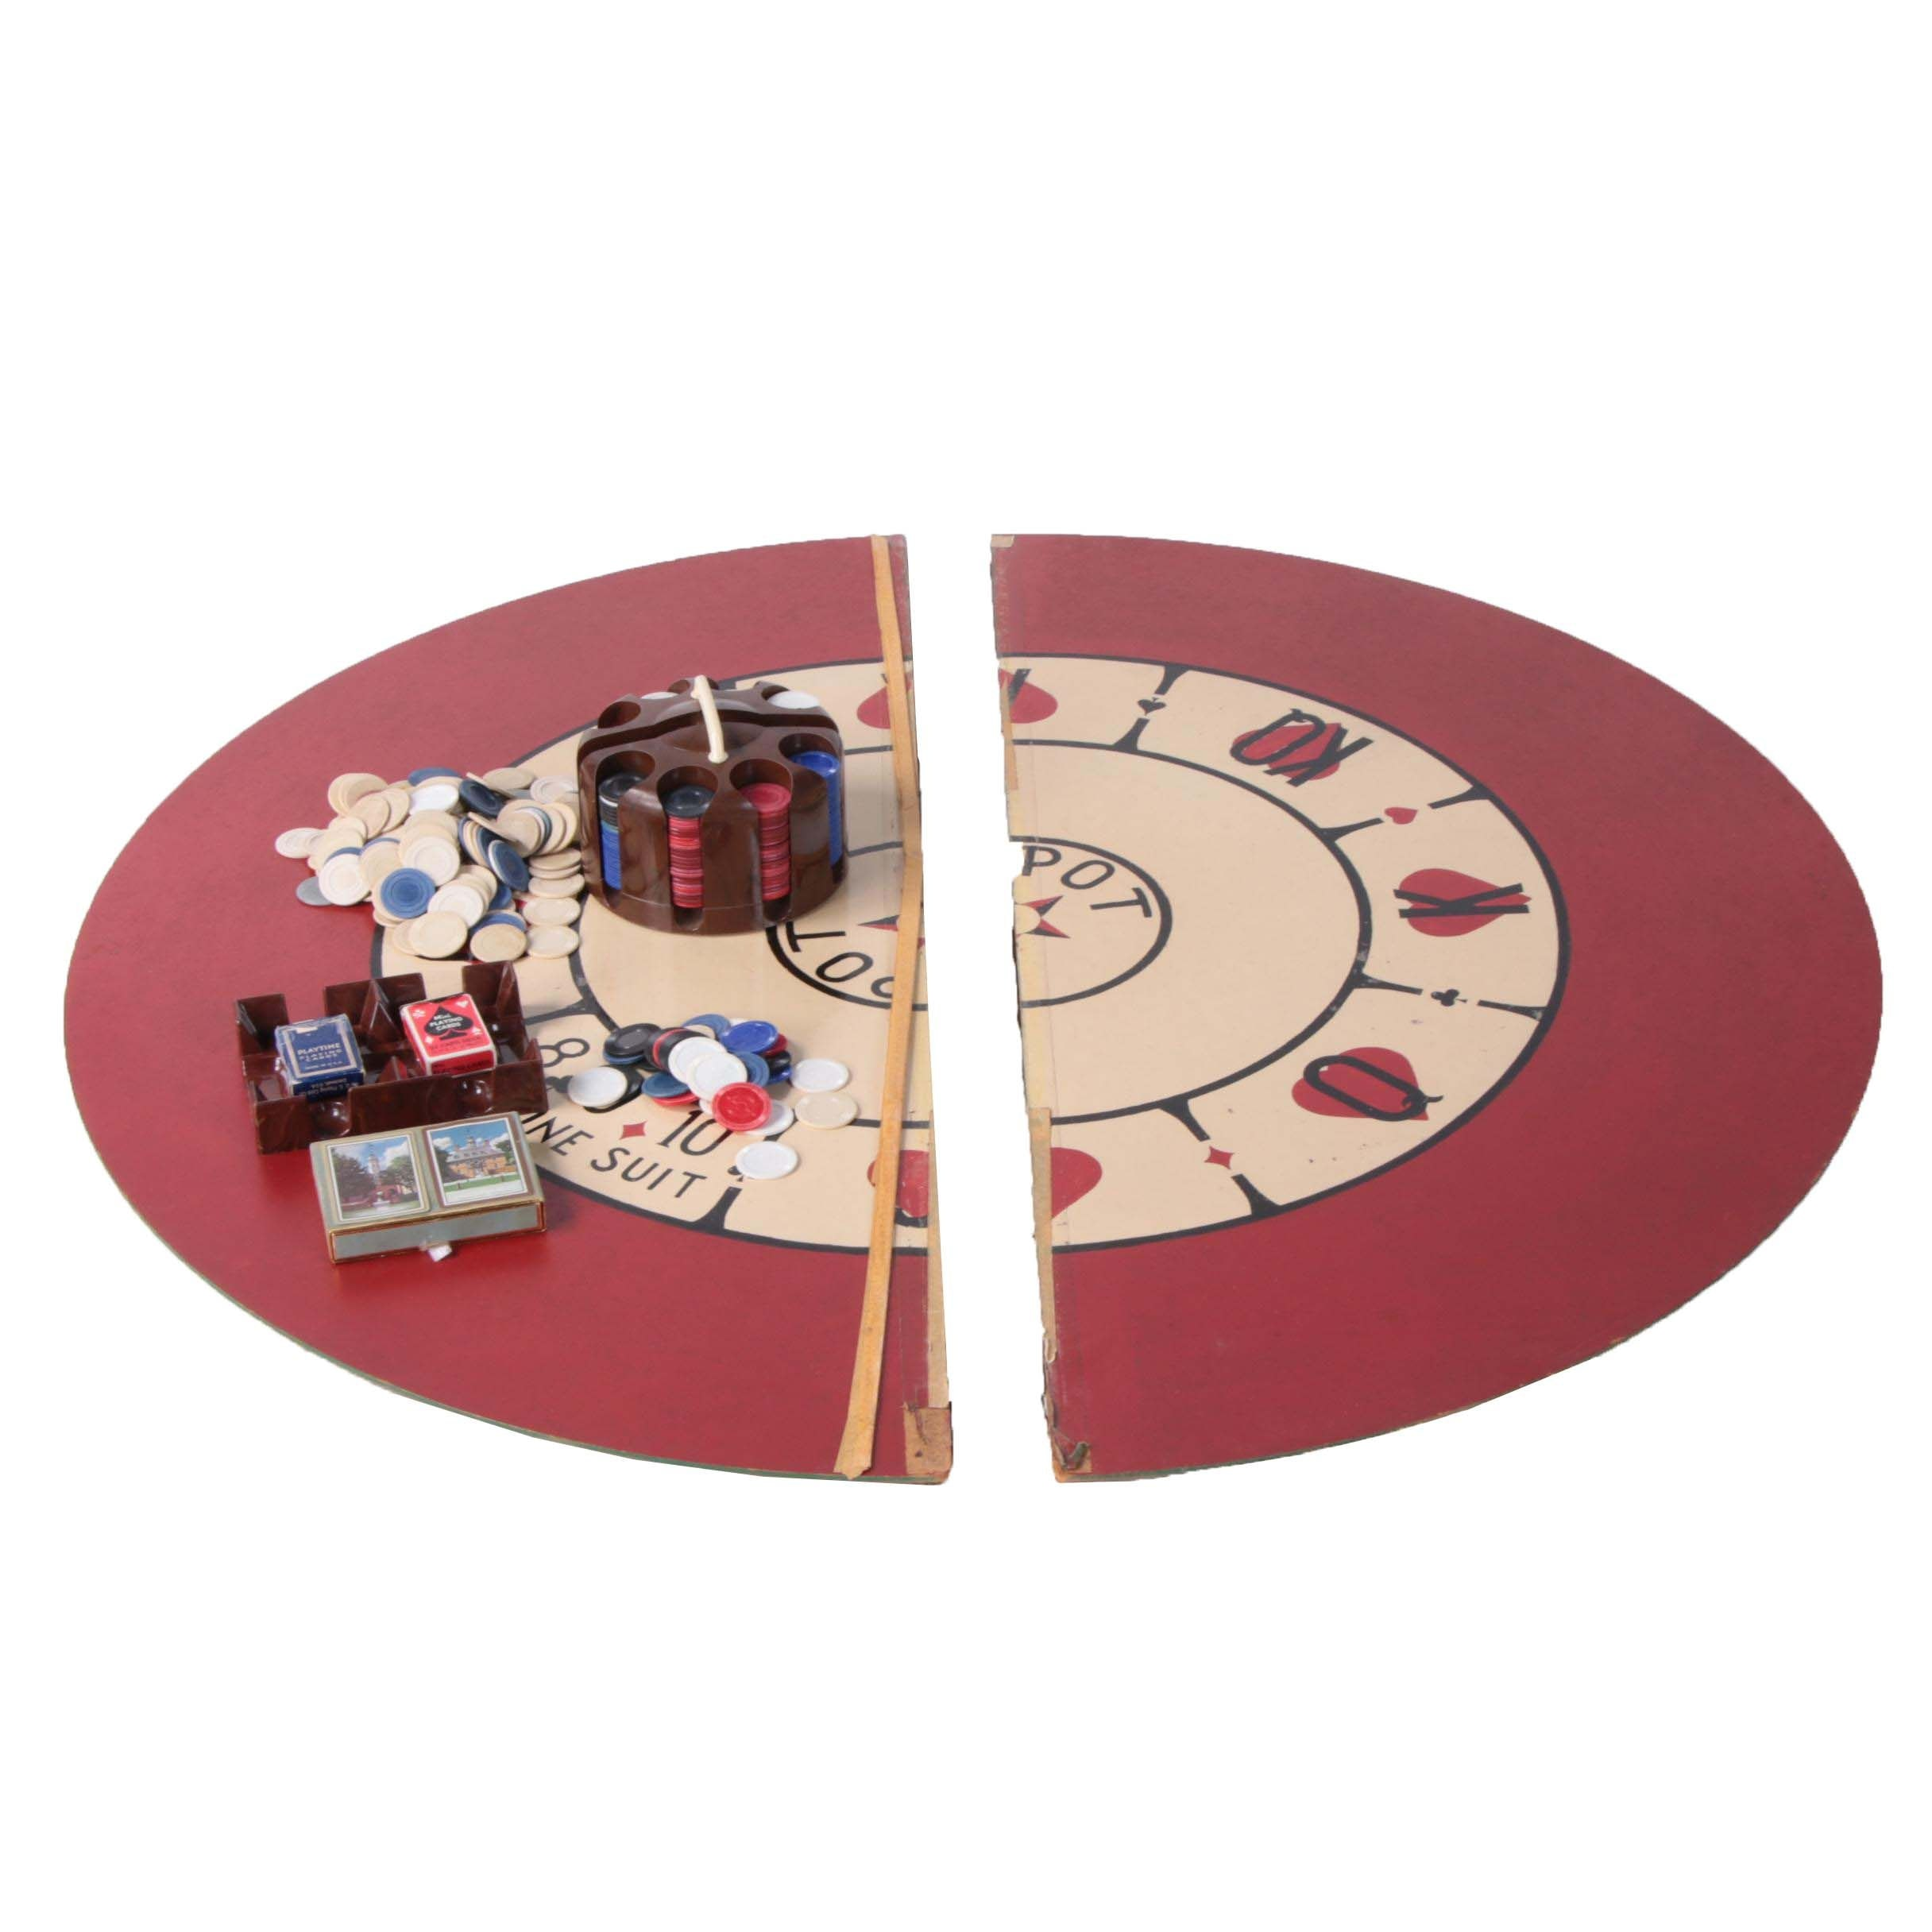 Vintage EZ-Do Tripoli Game Board with Poker Chips and Cards